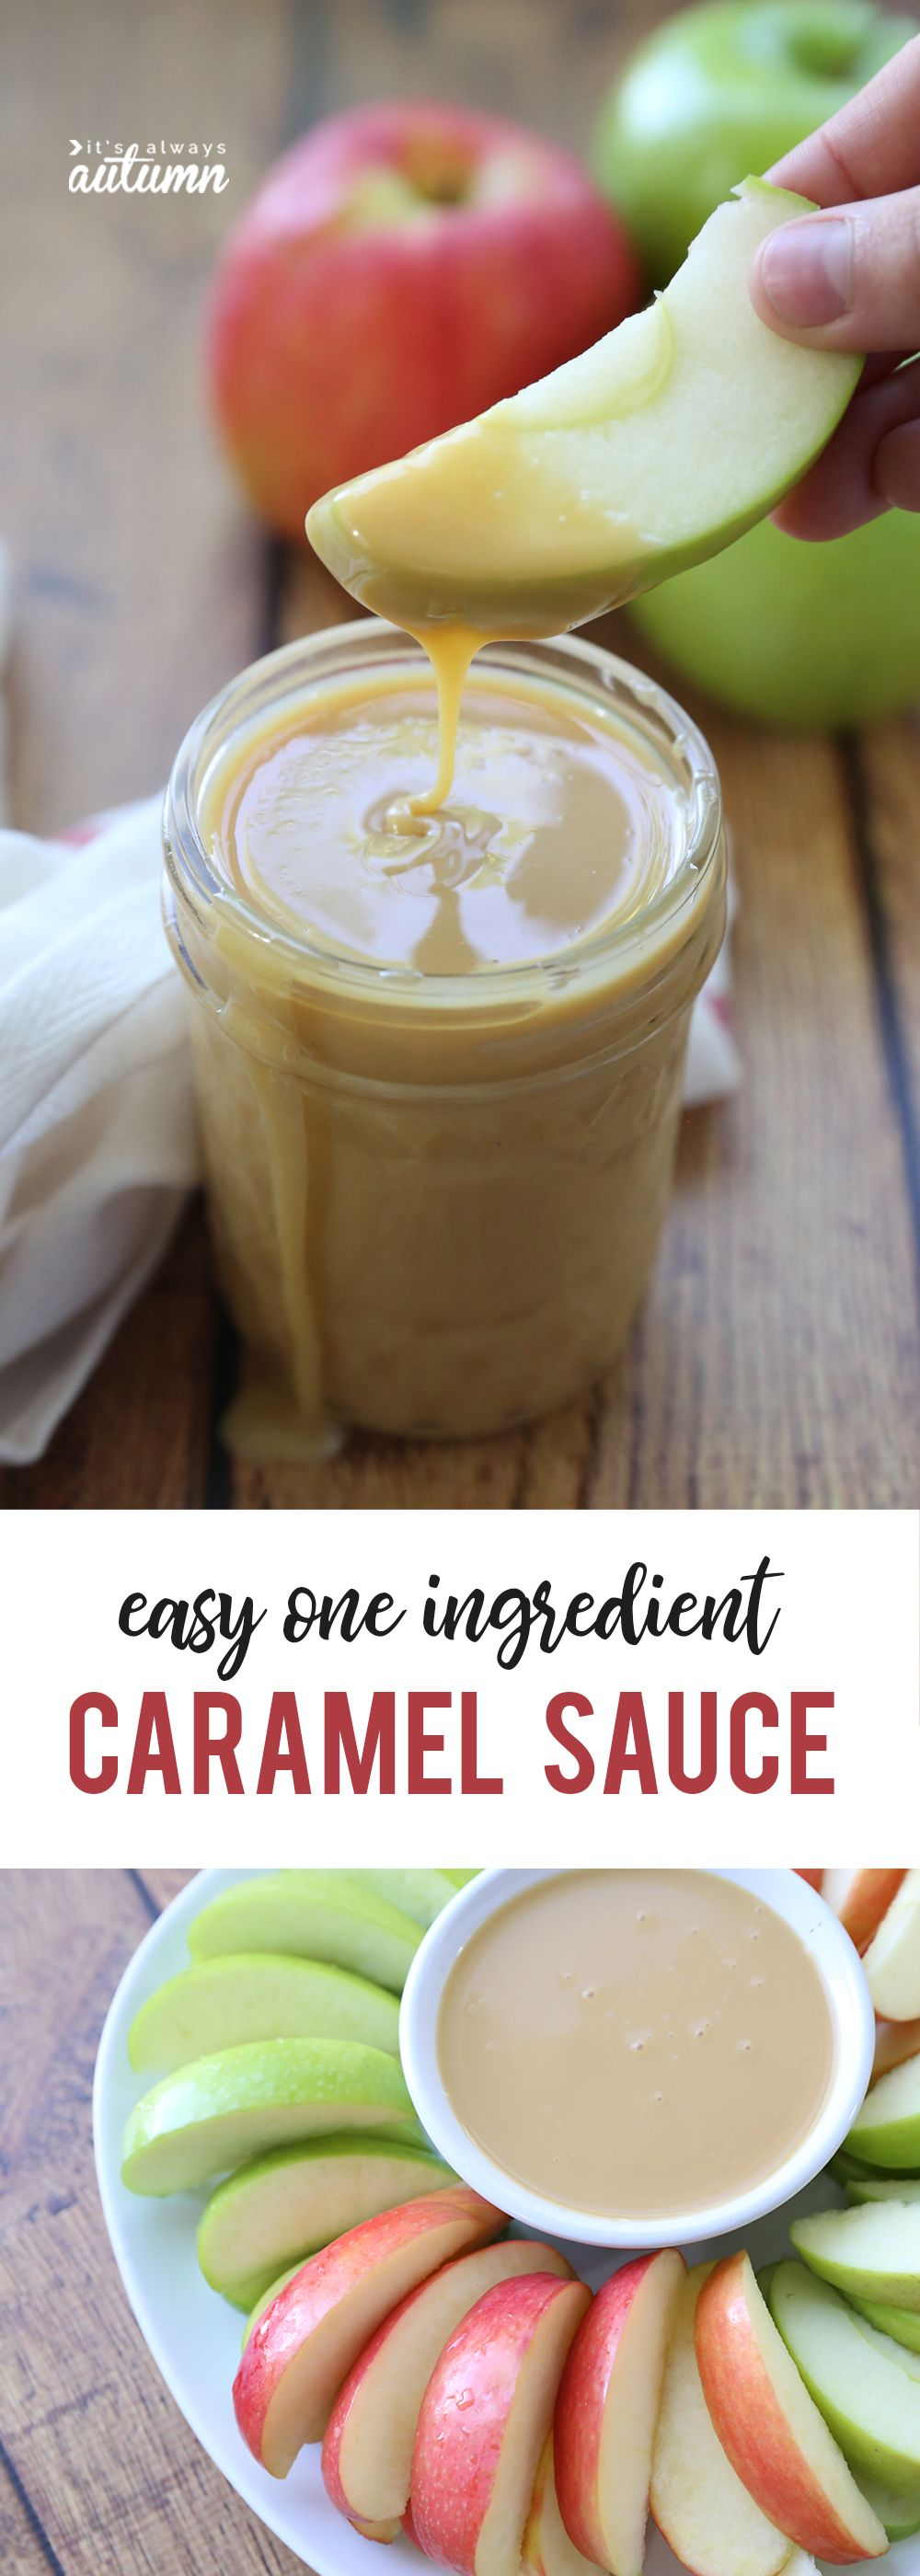 How To Make Condensed Milk Caramel Without Blowing Up Your Kitchen It S Always Autumn In 2020 Sweetened Condensed Milk Recipes Sweetened Condensed Milk Desserts Milk Caramel Recipe